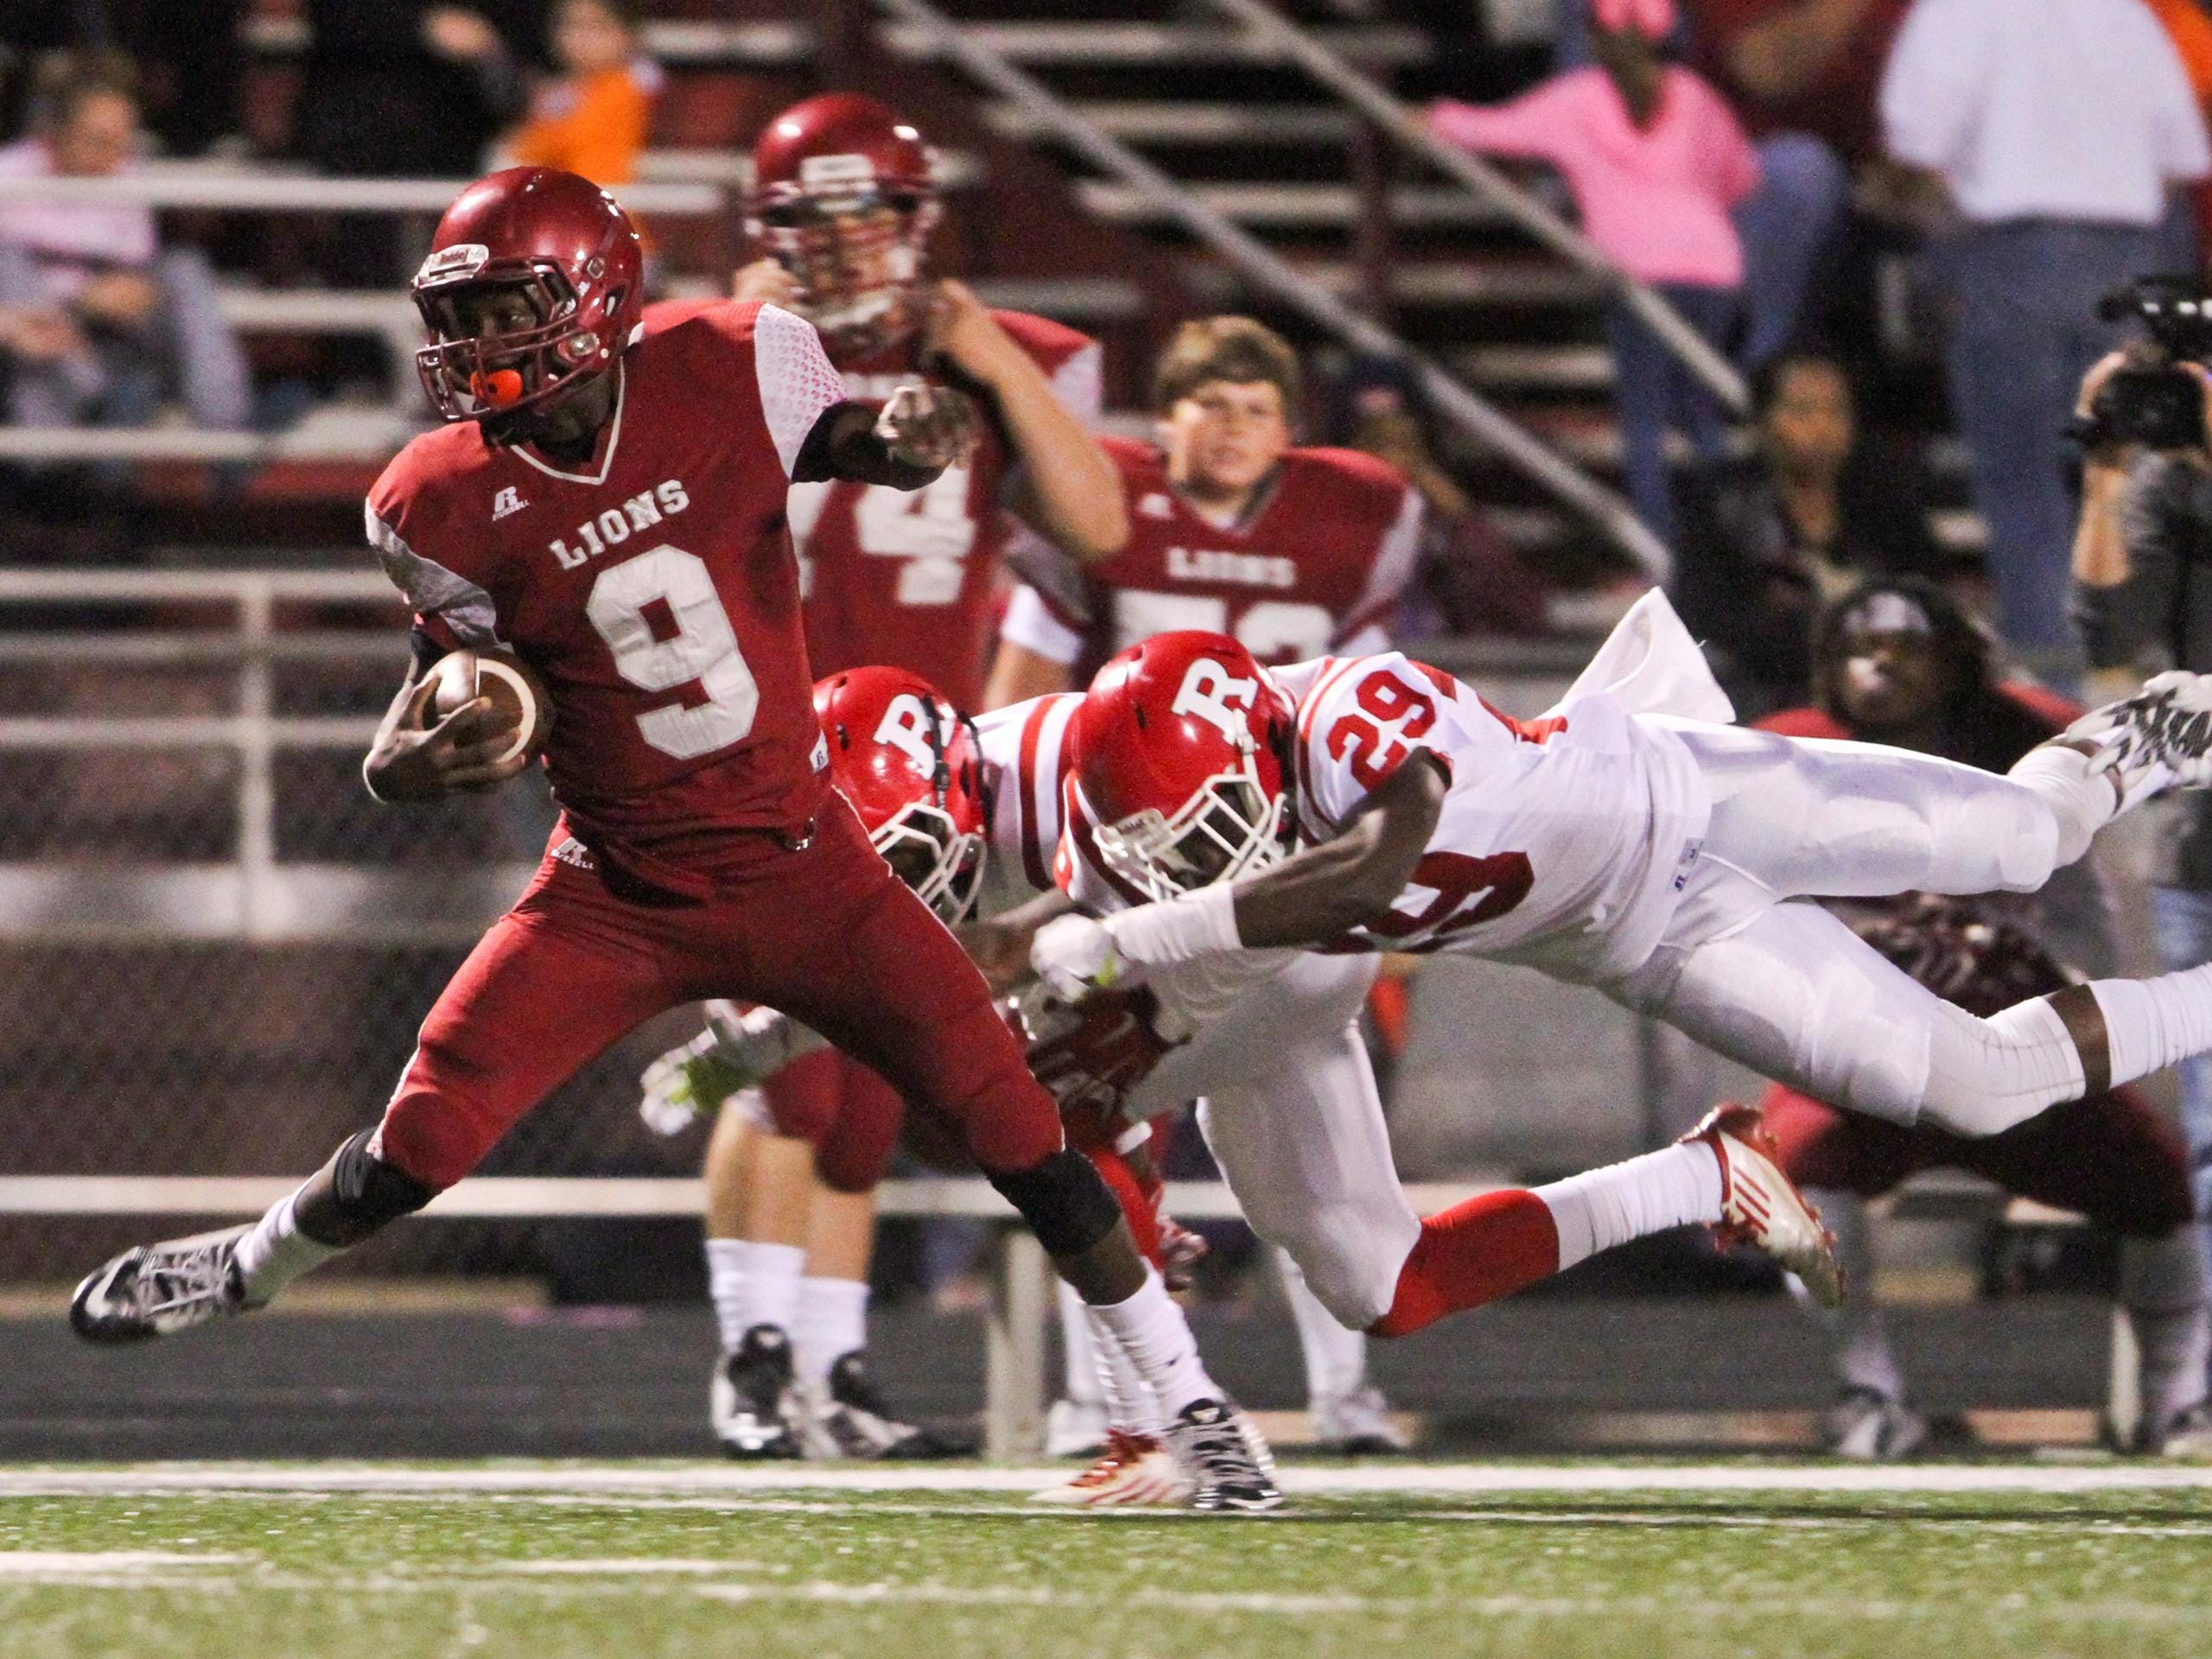 Ouachita Lion Devion Warren (9) outruns two Bearcat defenders and sprints toward the goal line for a touchdown. Emerald McIntyre/The News-Star